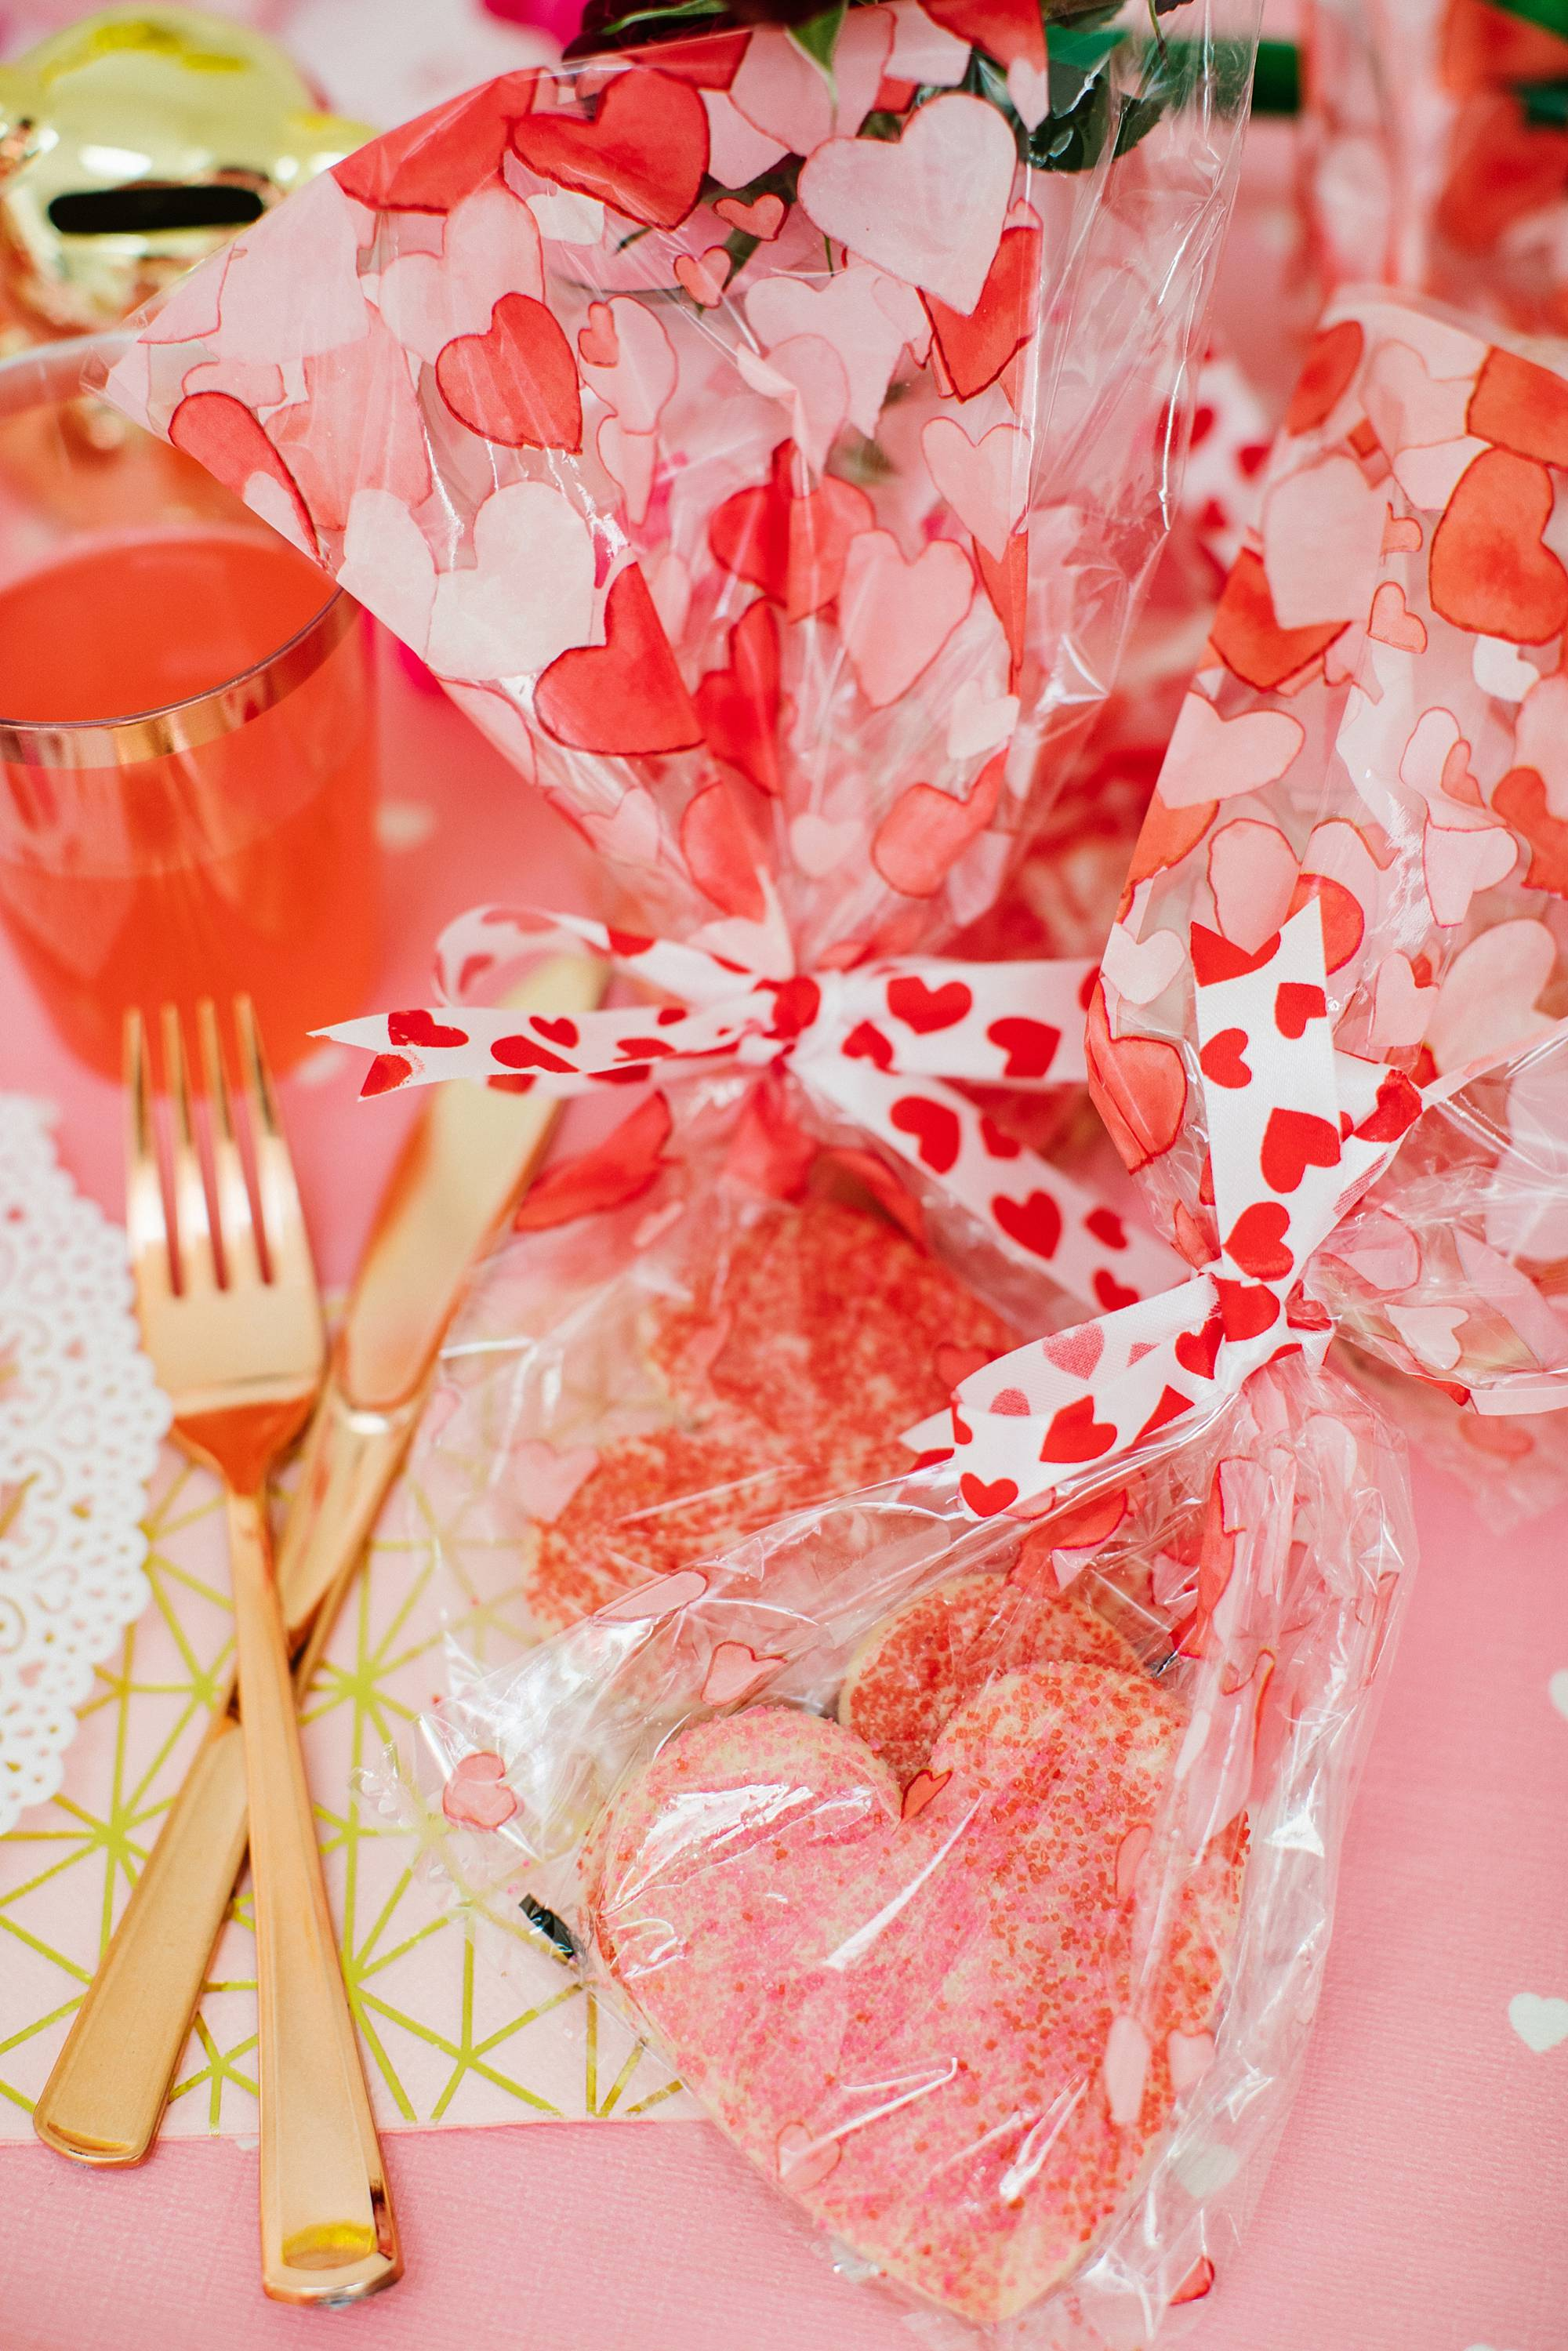 the 99 cents store Valentine's Day galentine's day decor from the 99 cents only store - a party on a budget cute girly and fun! #valentinesday #galentinesday